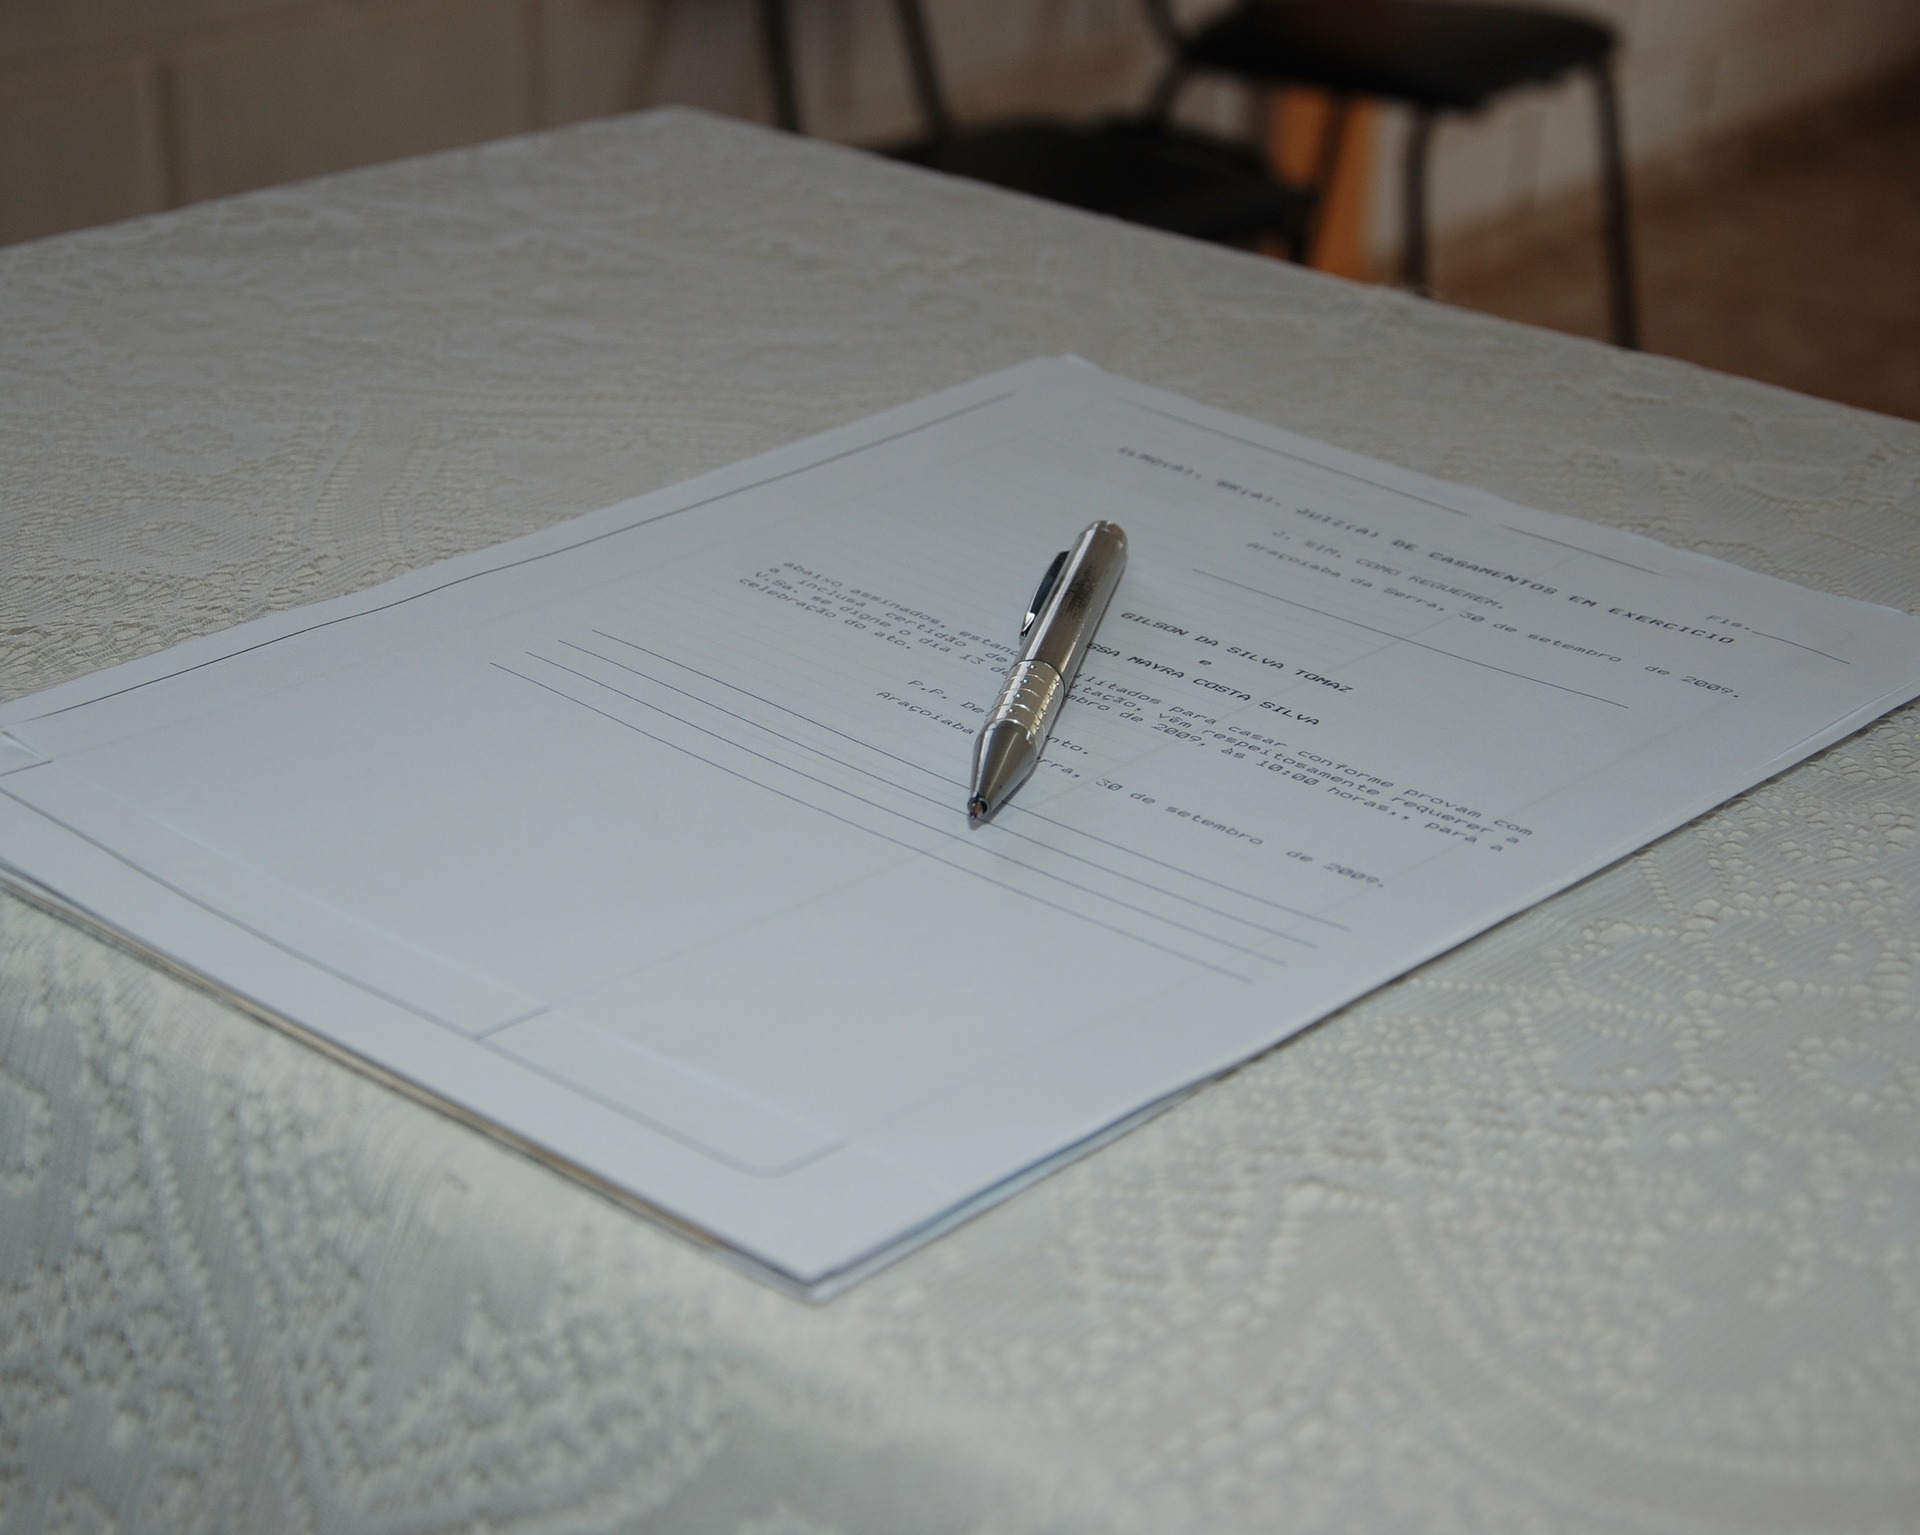 How to request the criminal record certificate and pending charges in Italy